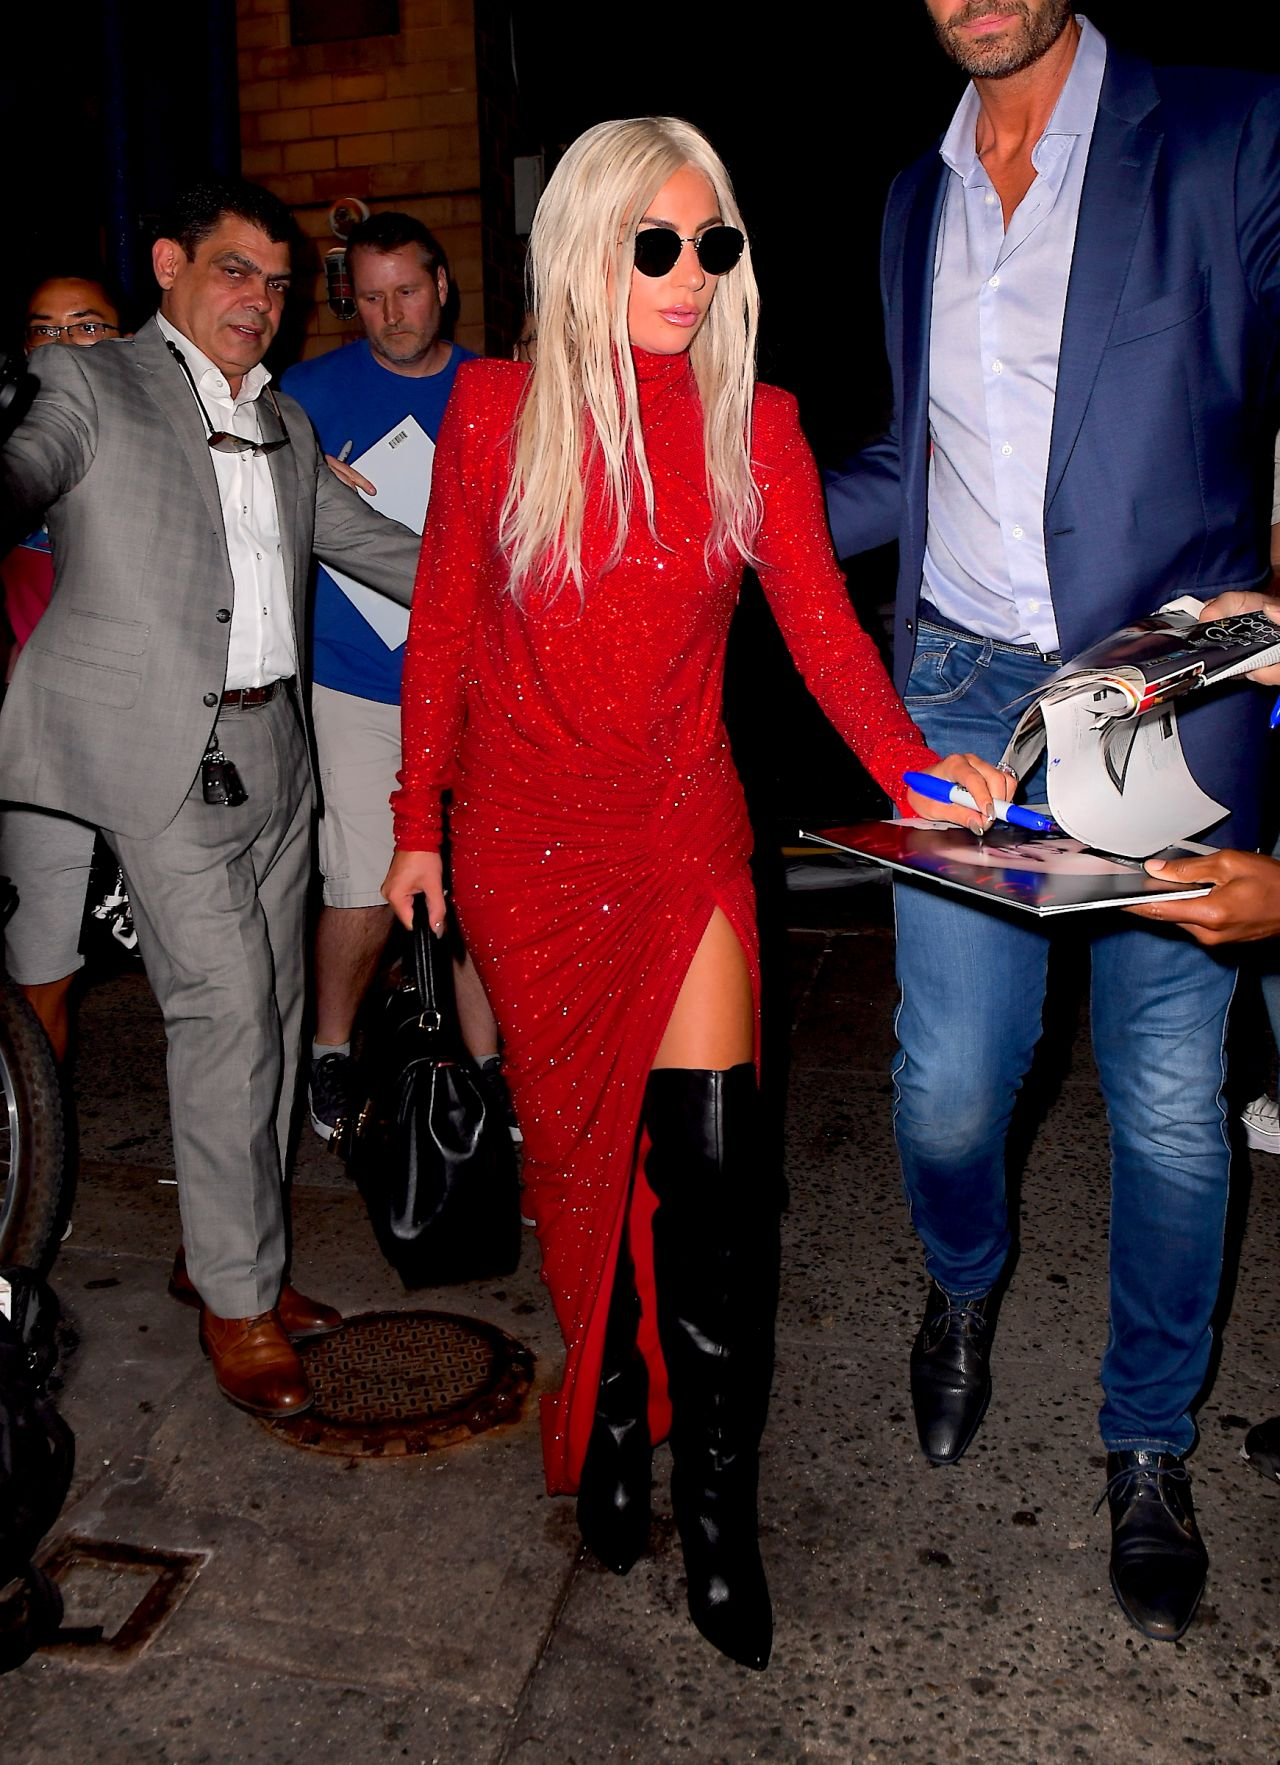 Lady Gaga In A High Slit Red Dress New York City 10 03 2018